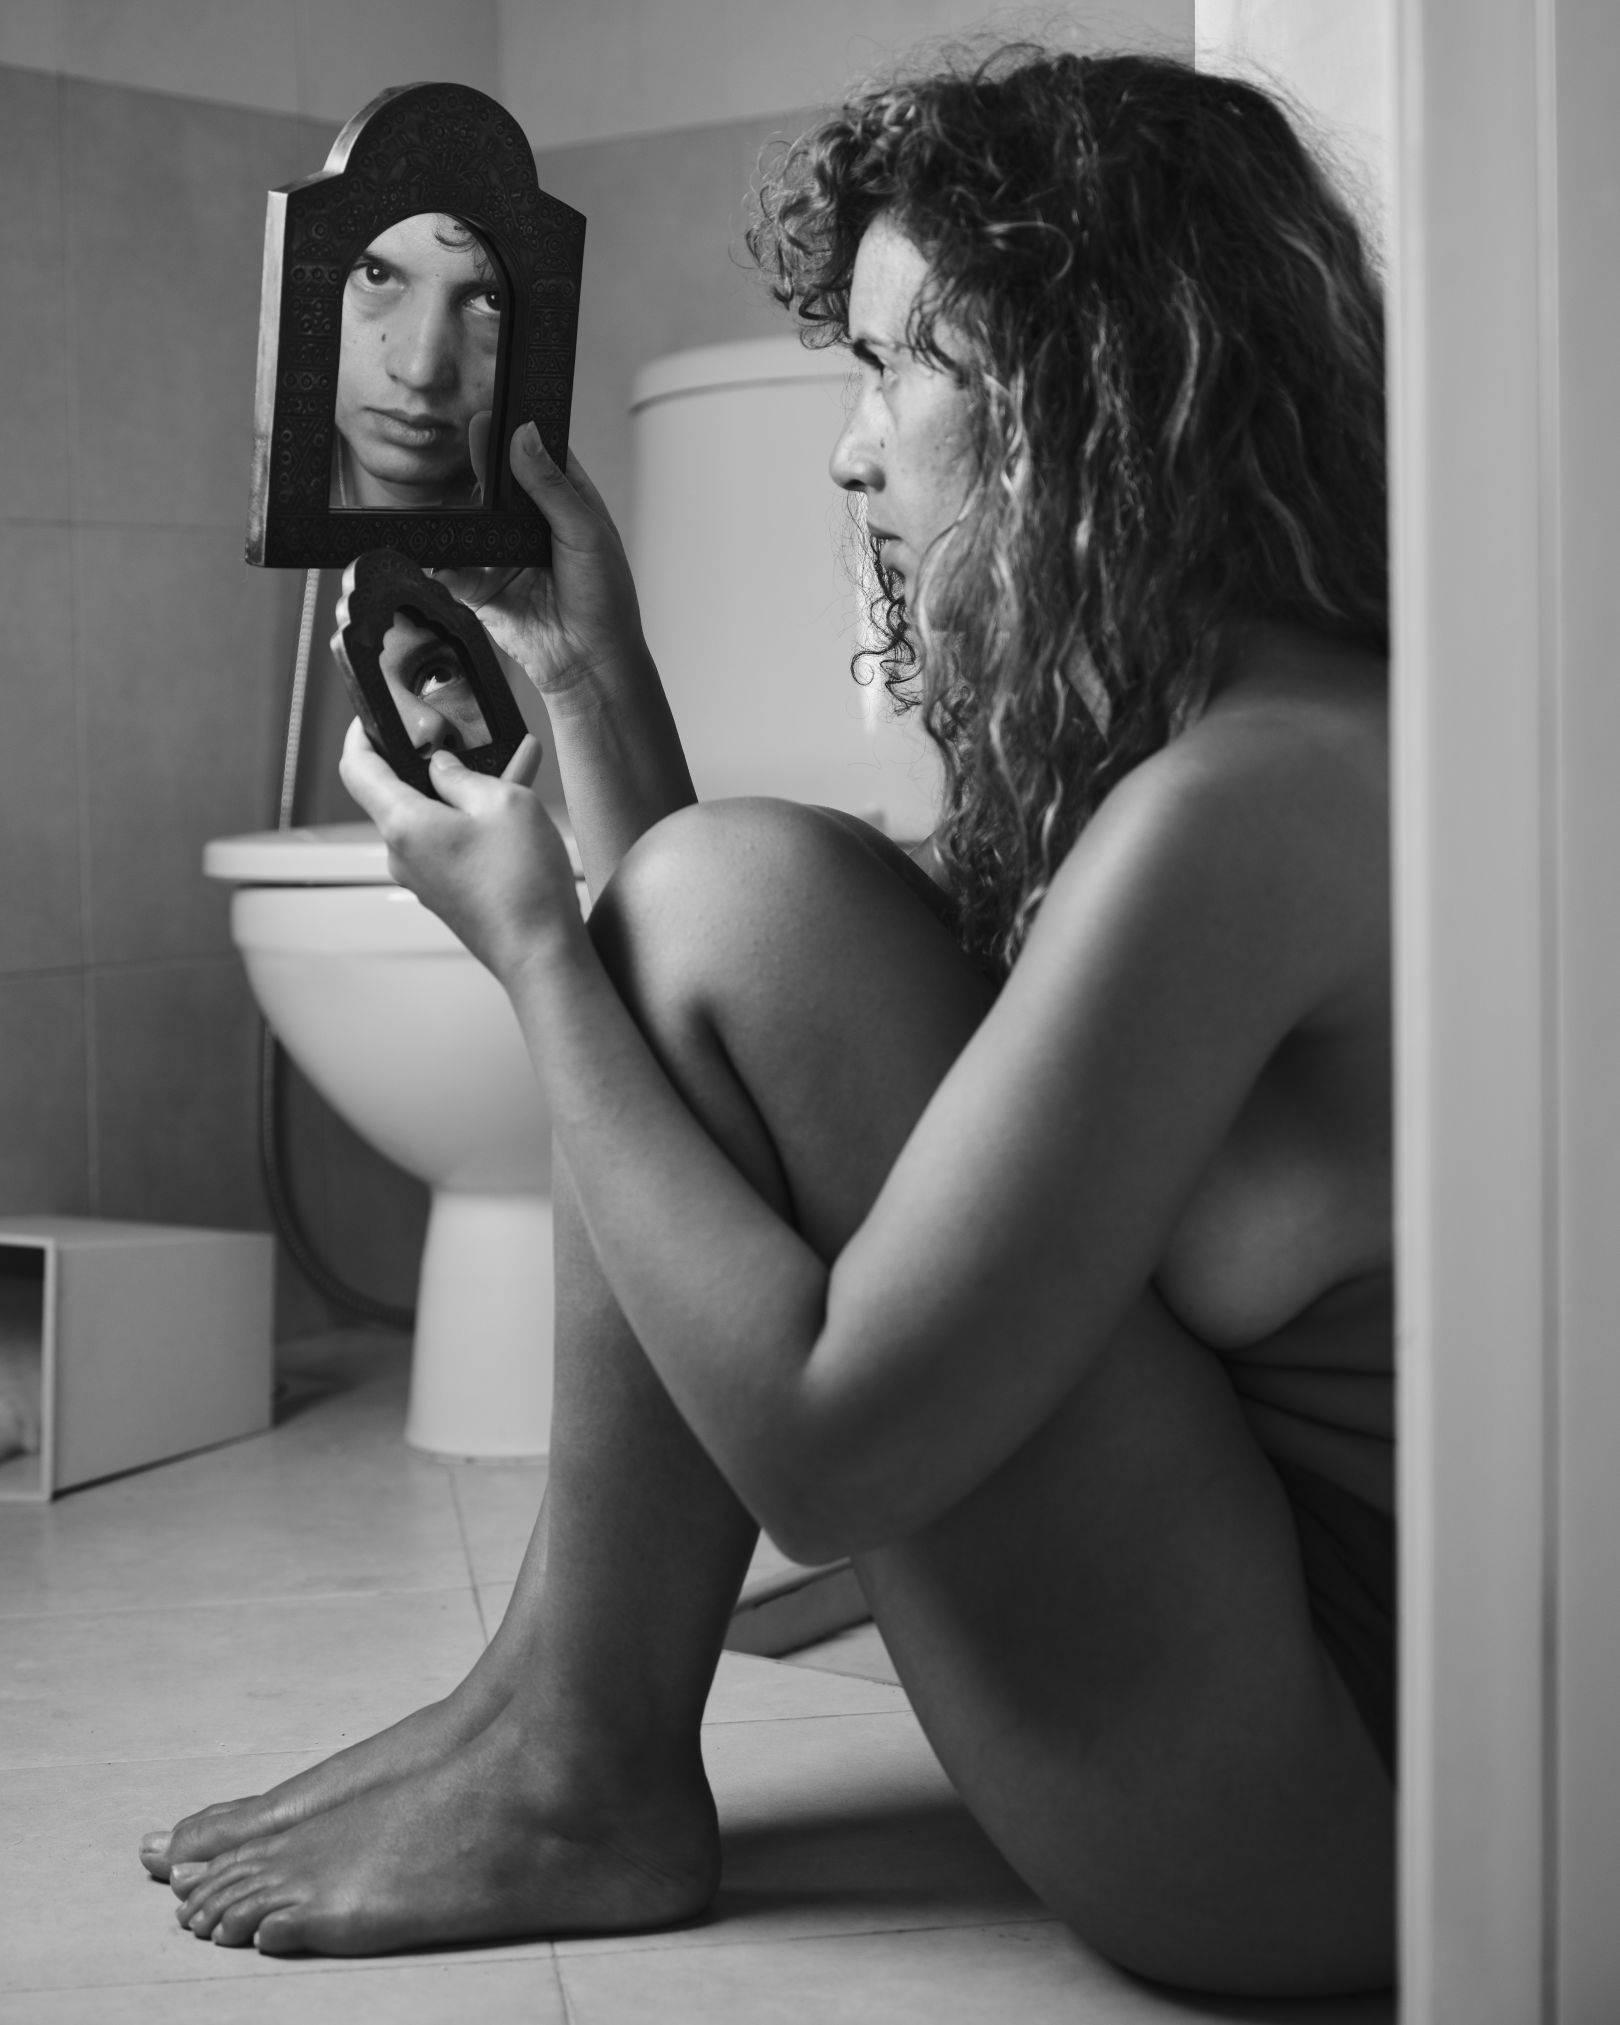 A black and white photo of a woman sitting on the bathroom floor next to her toilet. She is facing away from the camera, holding a small mirror that reflects her eyes back to the camera so she is looking at us.